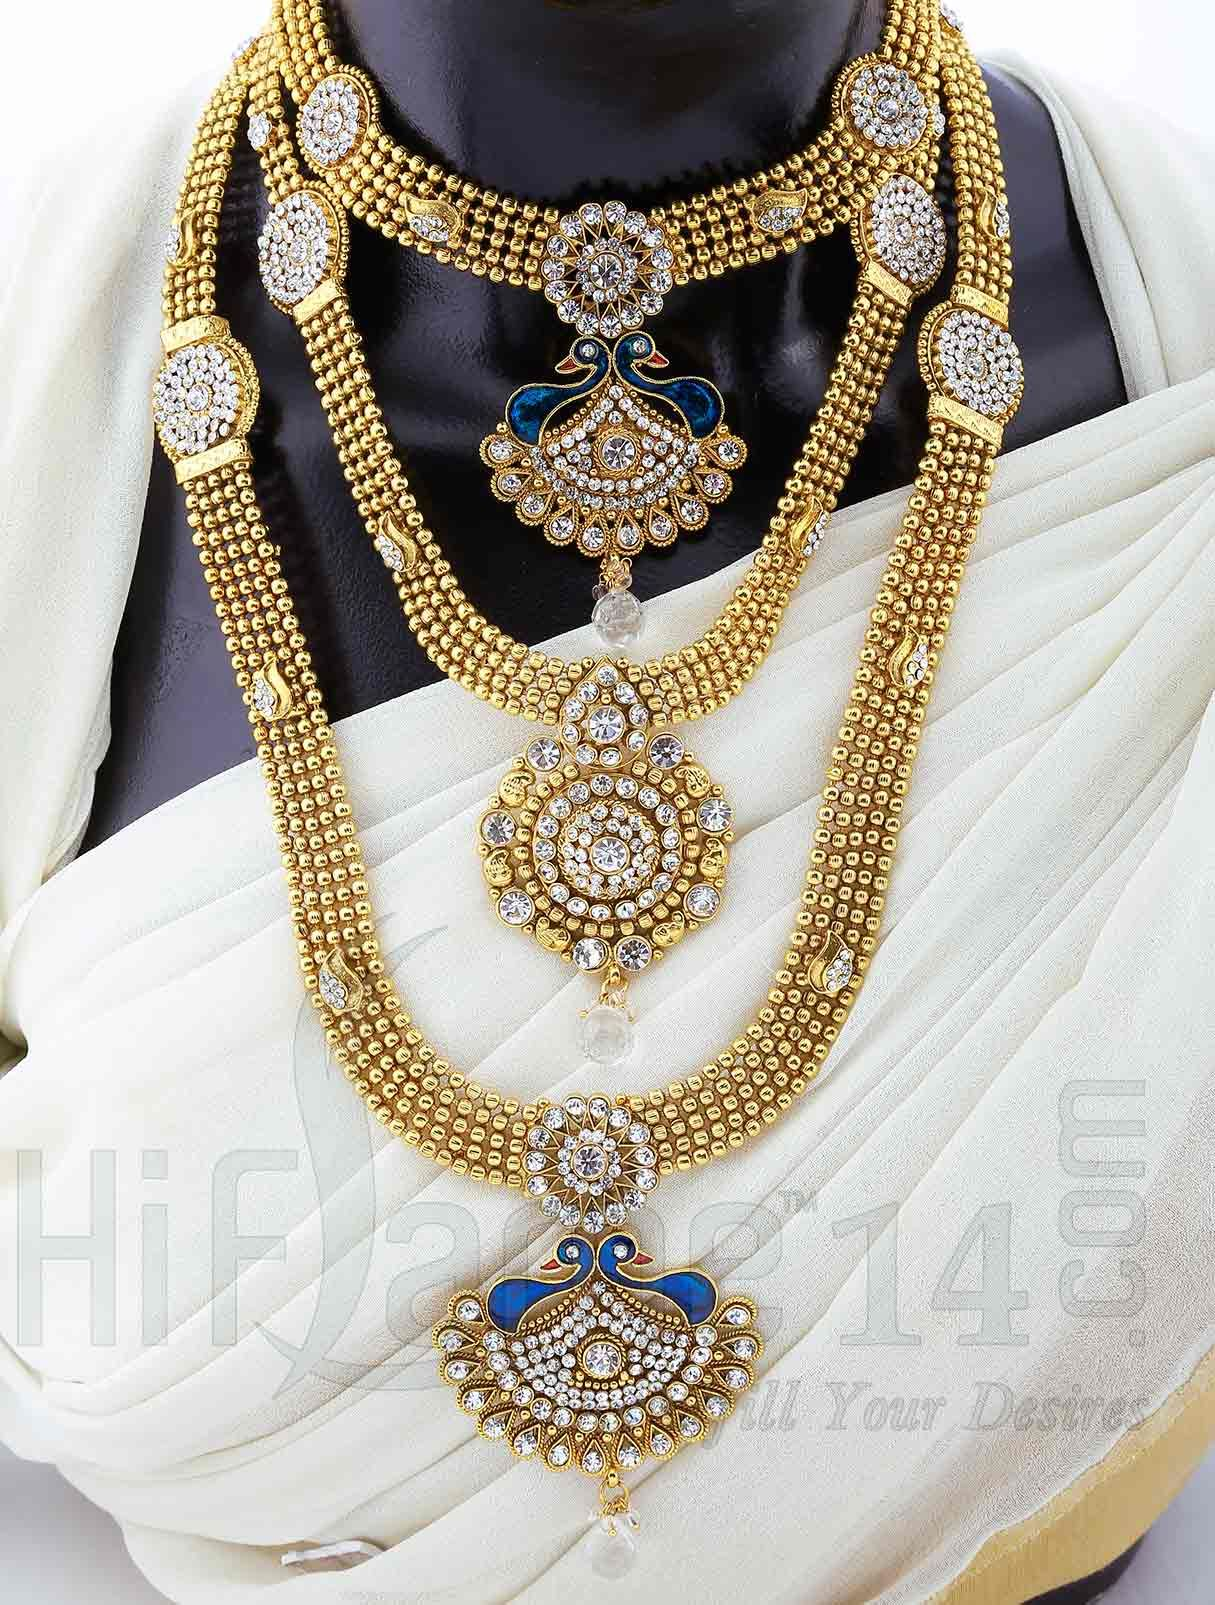 Bridal Jewellery Set with Sparkling White Stones